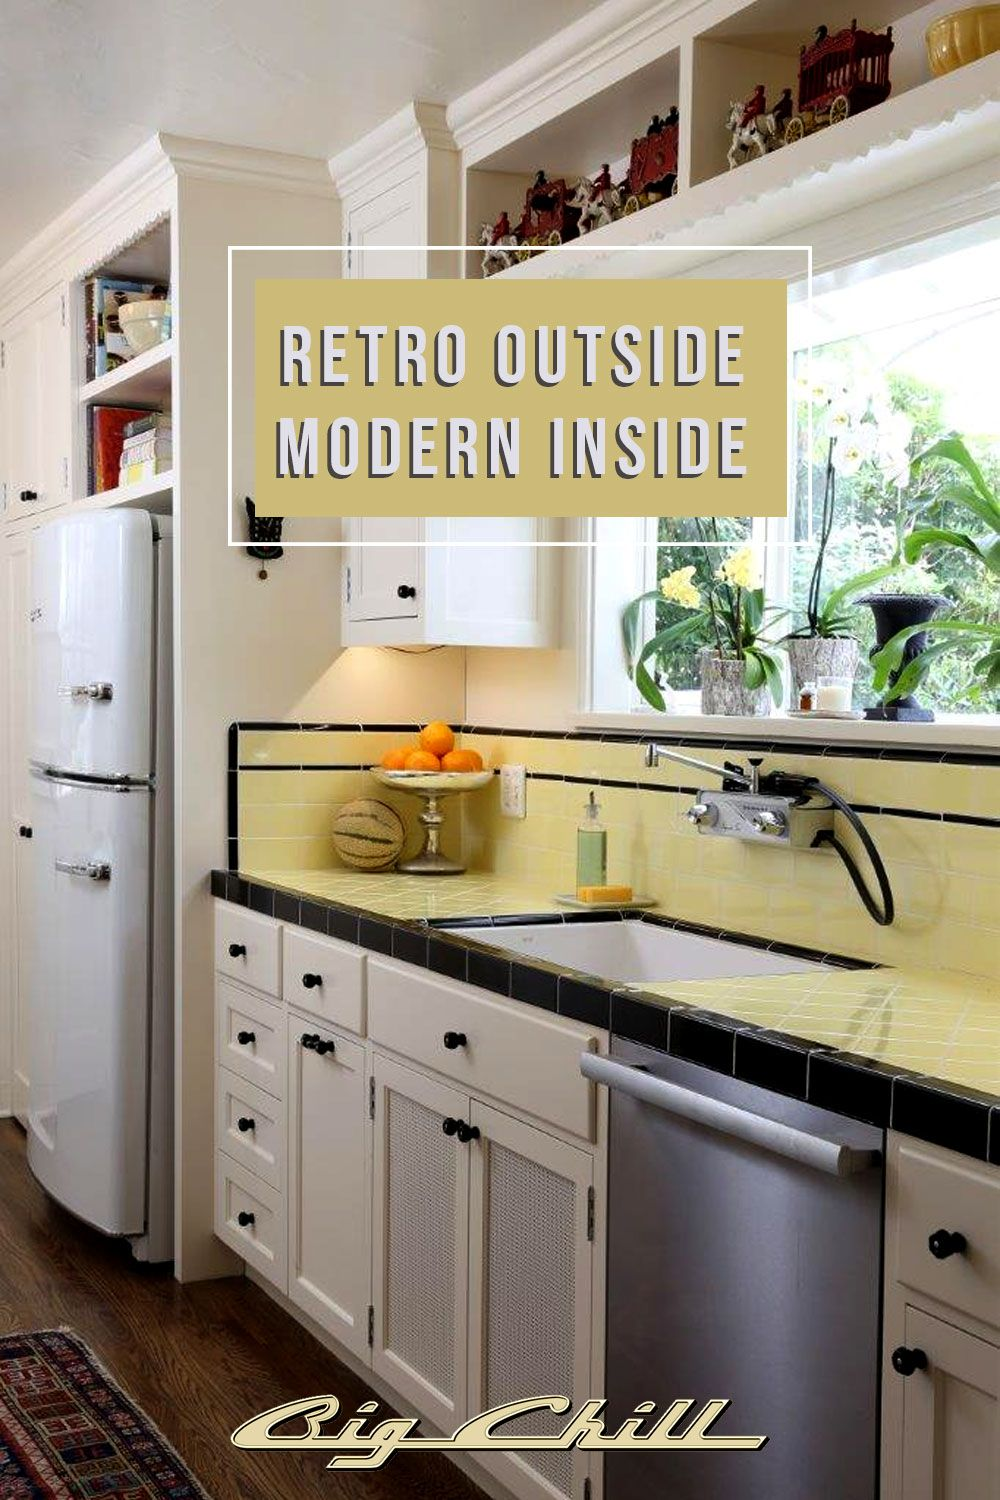 The Big Chill Original In A Remodeled 1931 Spanish Revival Bungalow Located On The Riviera In Santa Barba Bungalow Kitchen New Kitchen Cabinets Vintage Kitchen